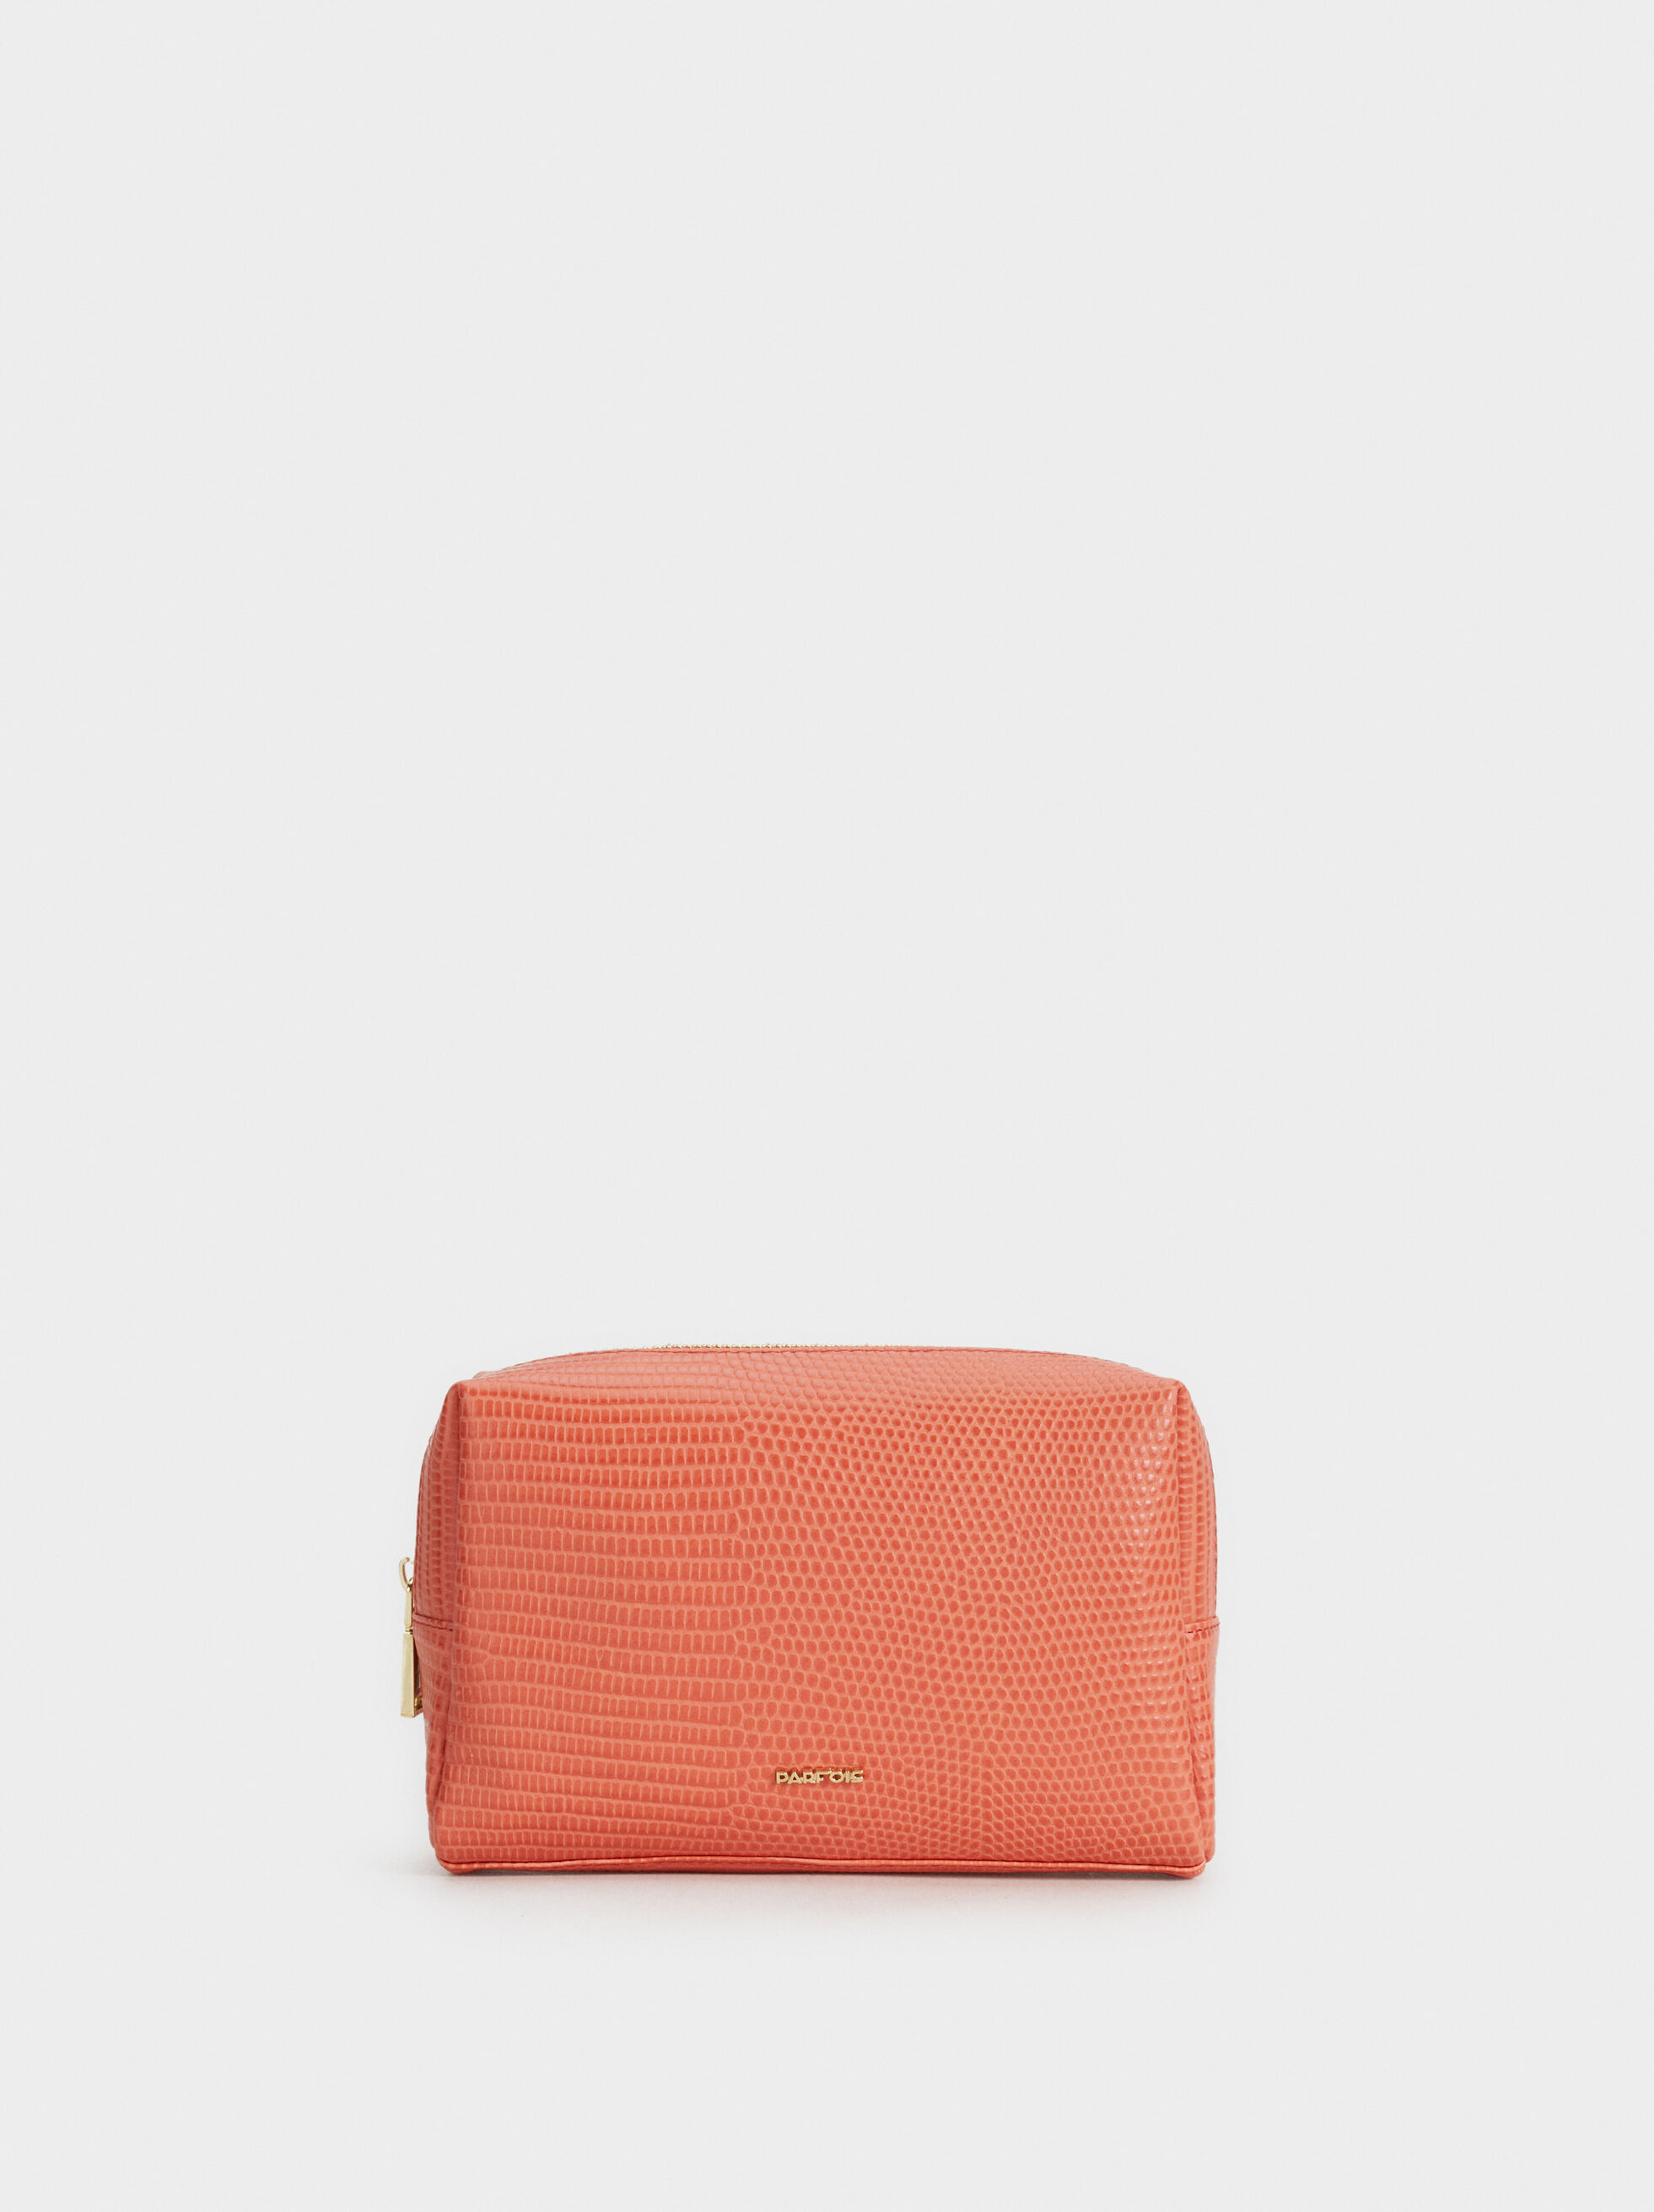 Faux Snakeskin Toiletry Bag, Orange, hi-res